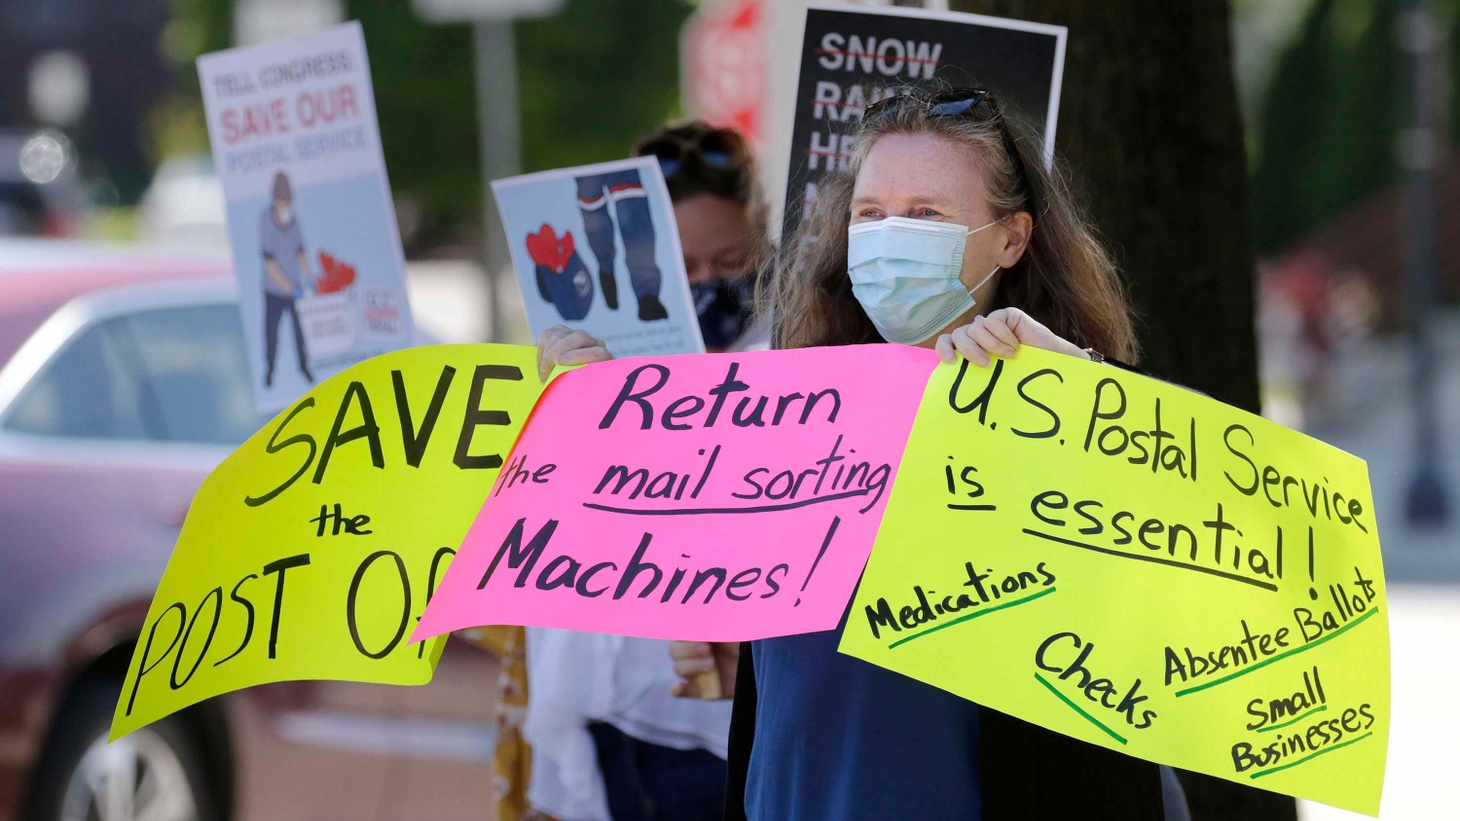 A woman holds signs of support for the U.S. Postal Service, Wednesday, August 19, 2020, in Sheboygan, Wis.